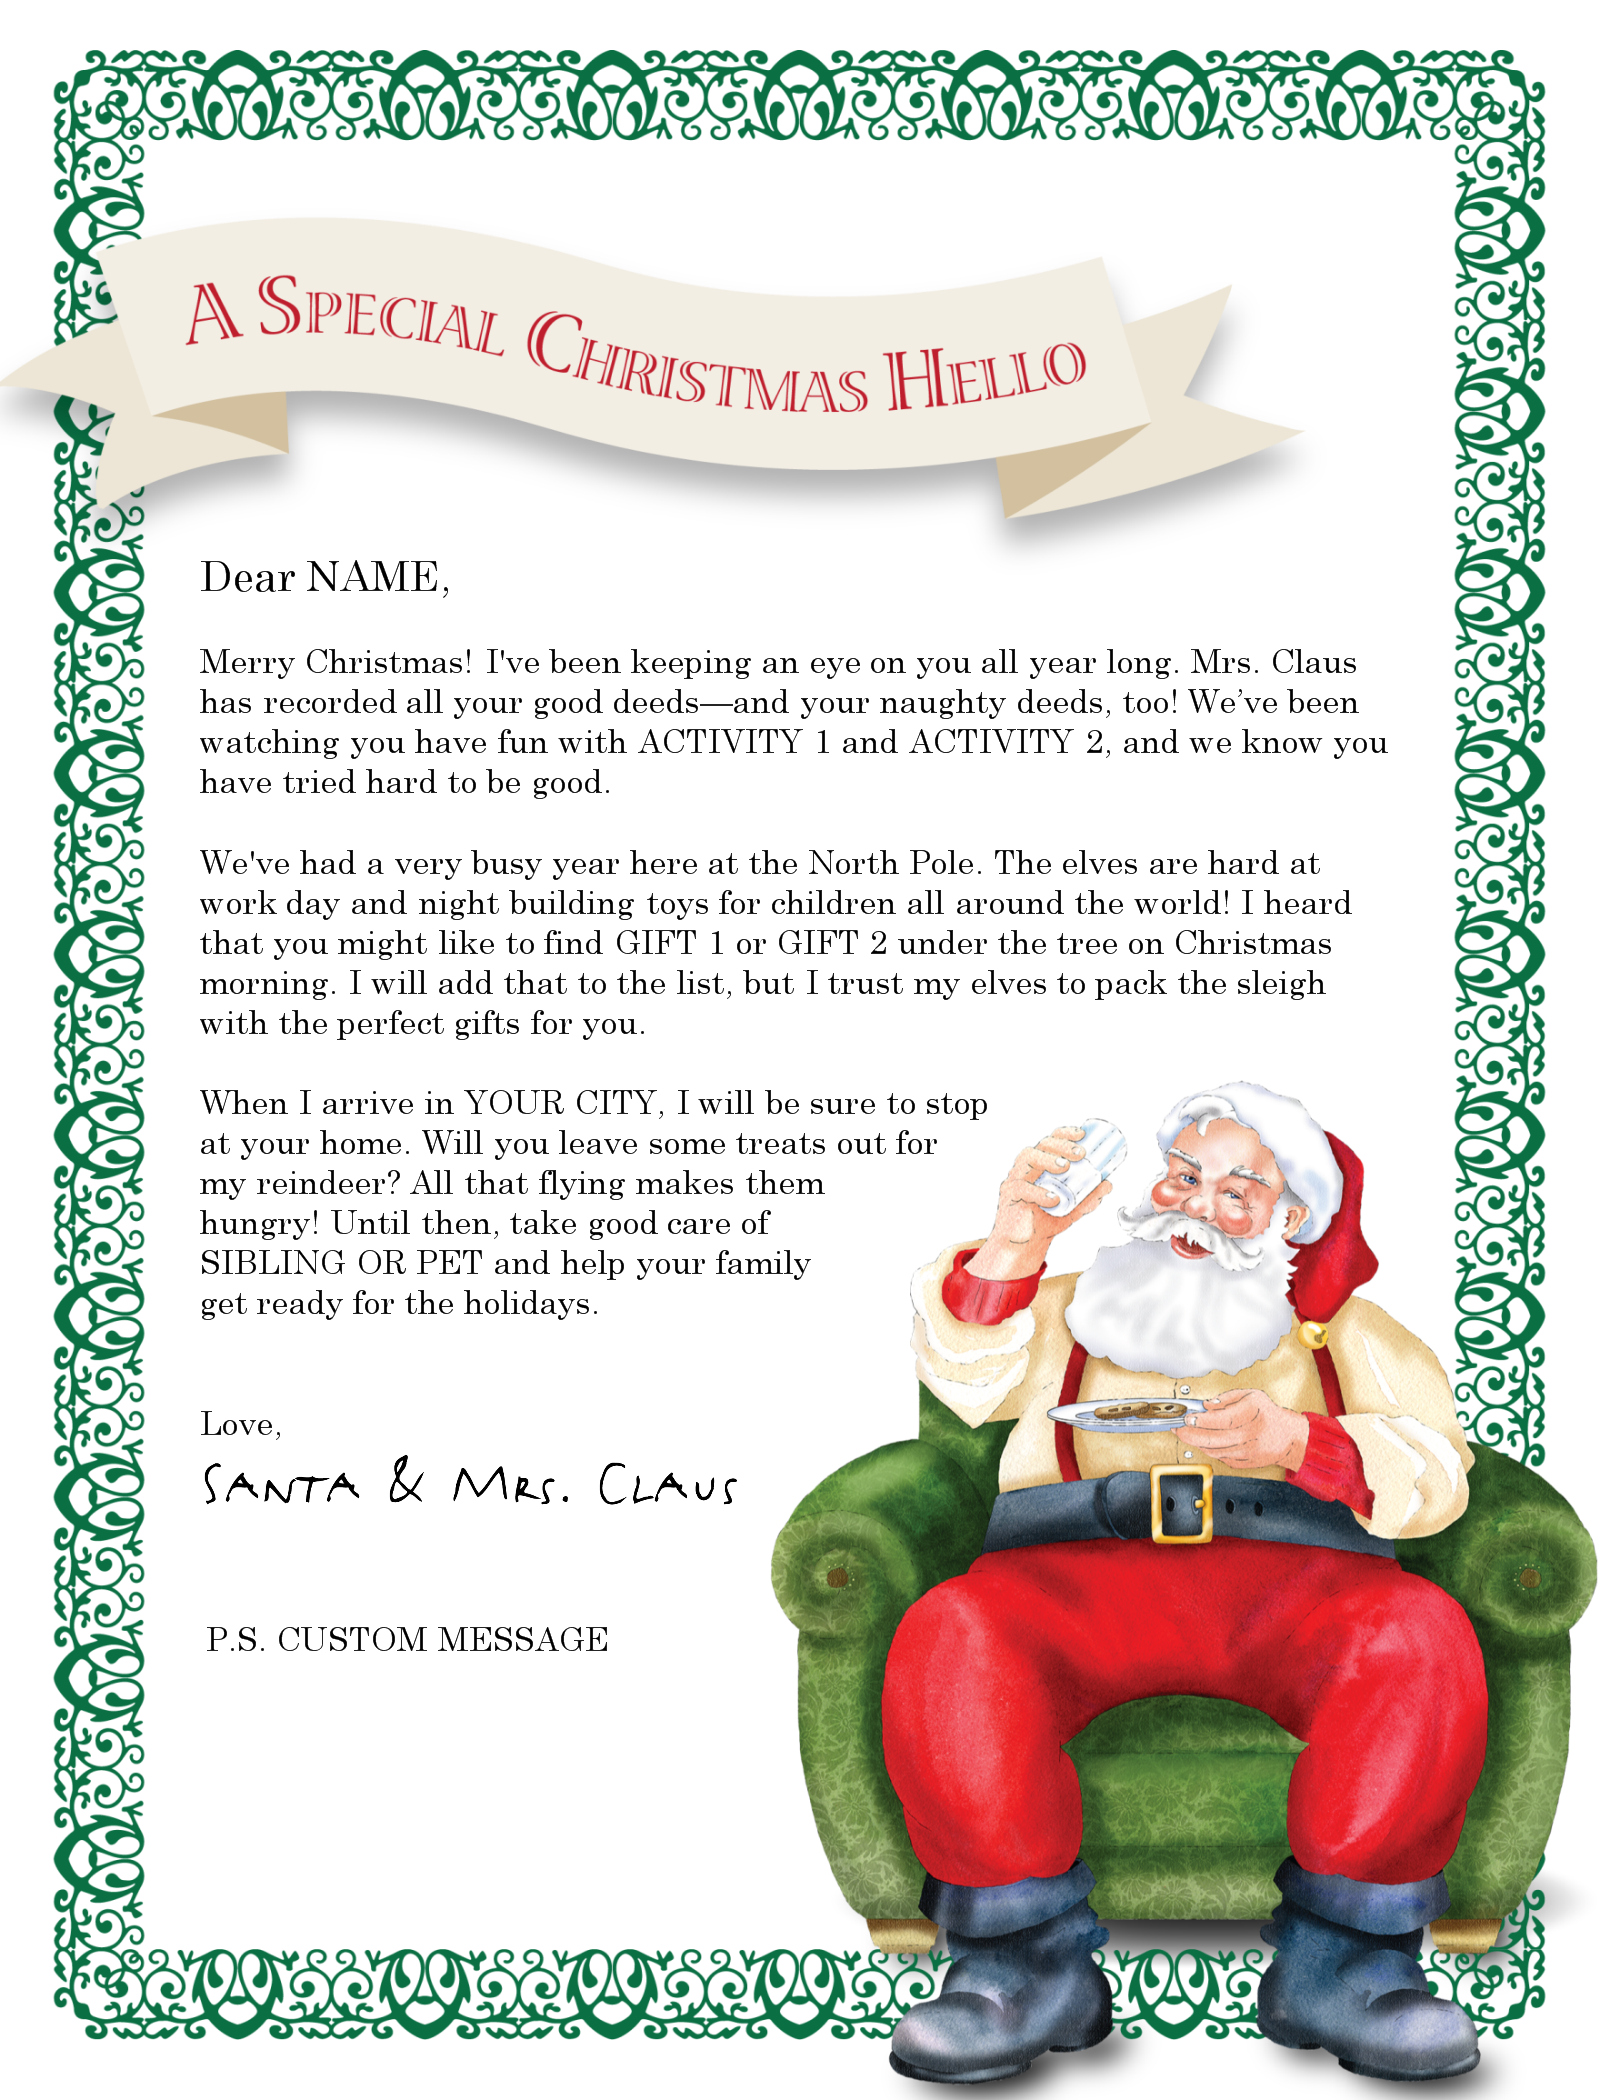 A cute MS Word Santa letter template from Christmas Letter Tips – Free Christmas Templates for Word